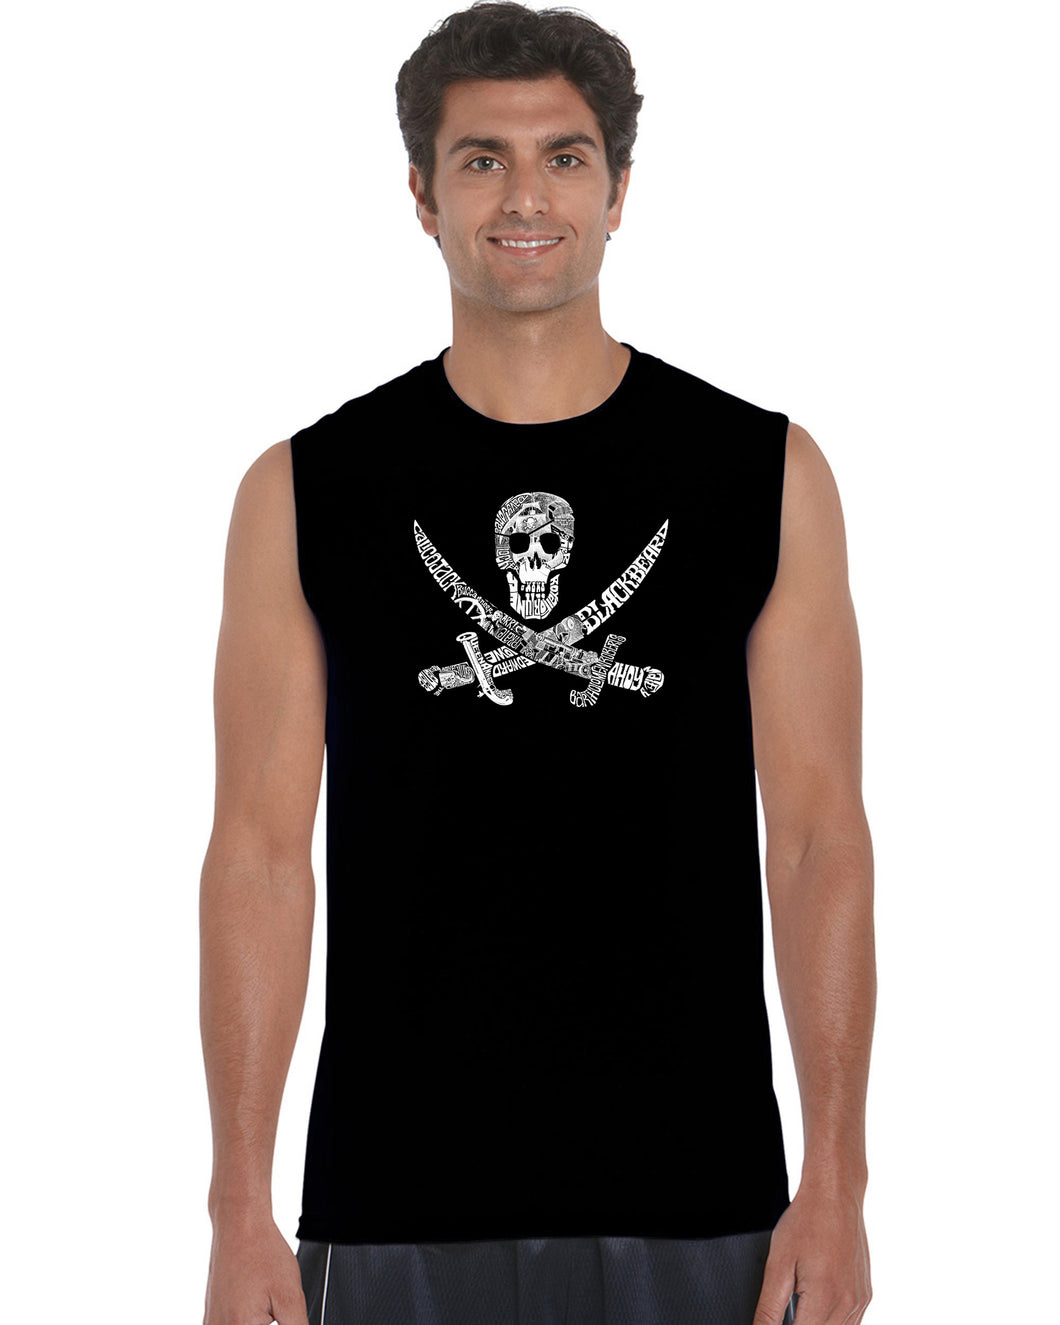 LA Pop Art Men's Word Art Sleeveless T-shirt - PIRATE CAPTAINS, SHIPS AND IMAGERY